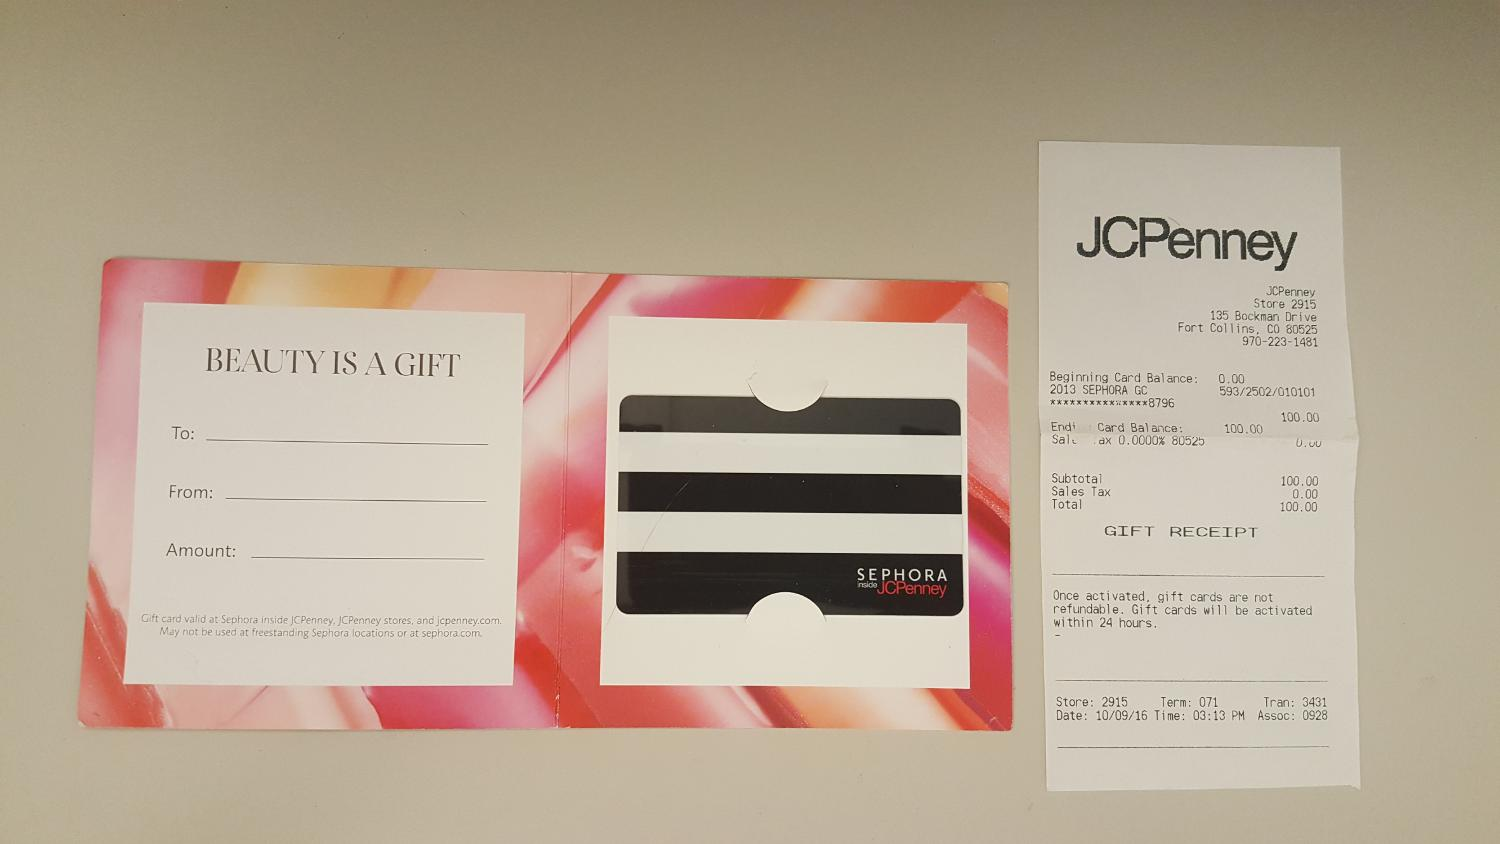 Find More 100 Sephora Gift Card For Sale At Up To 90 Off